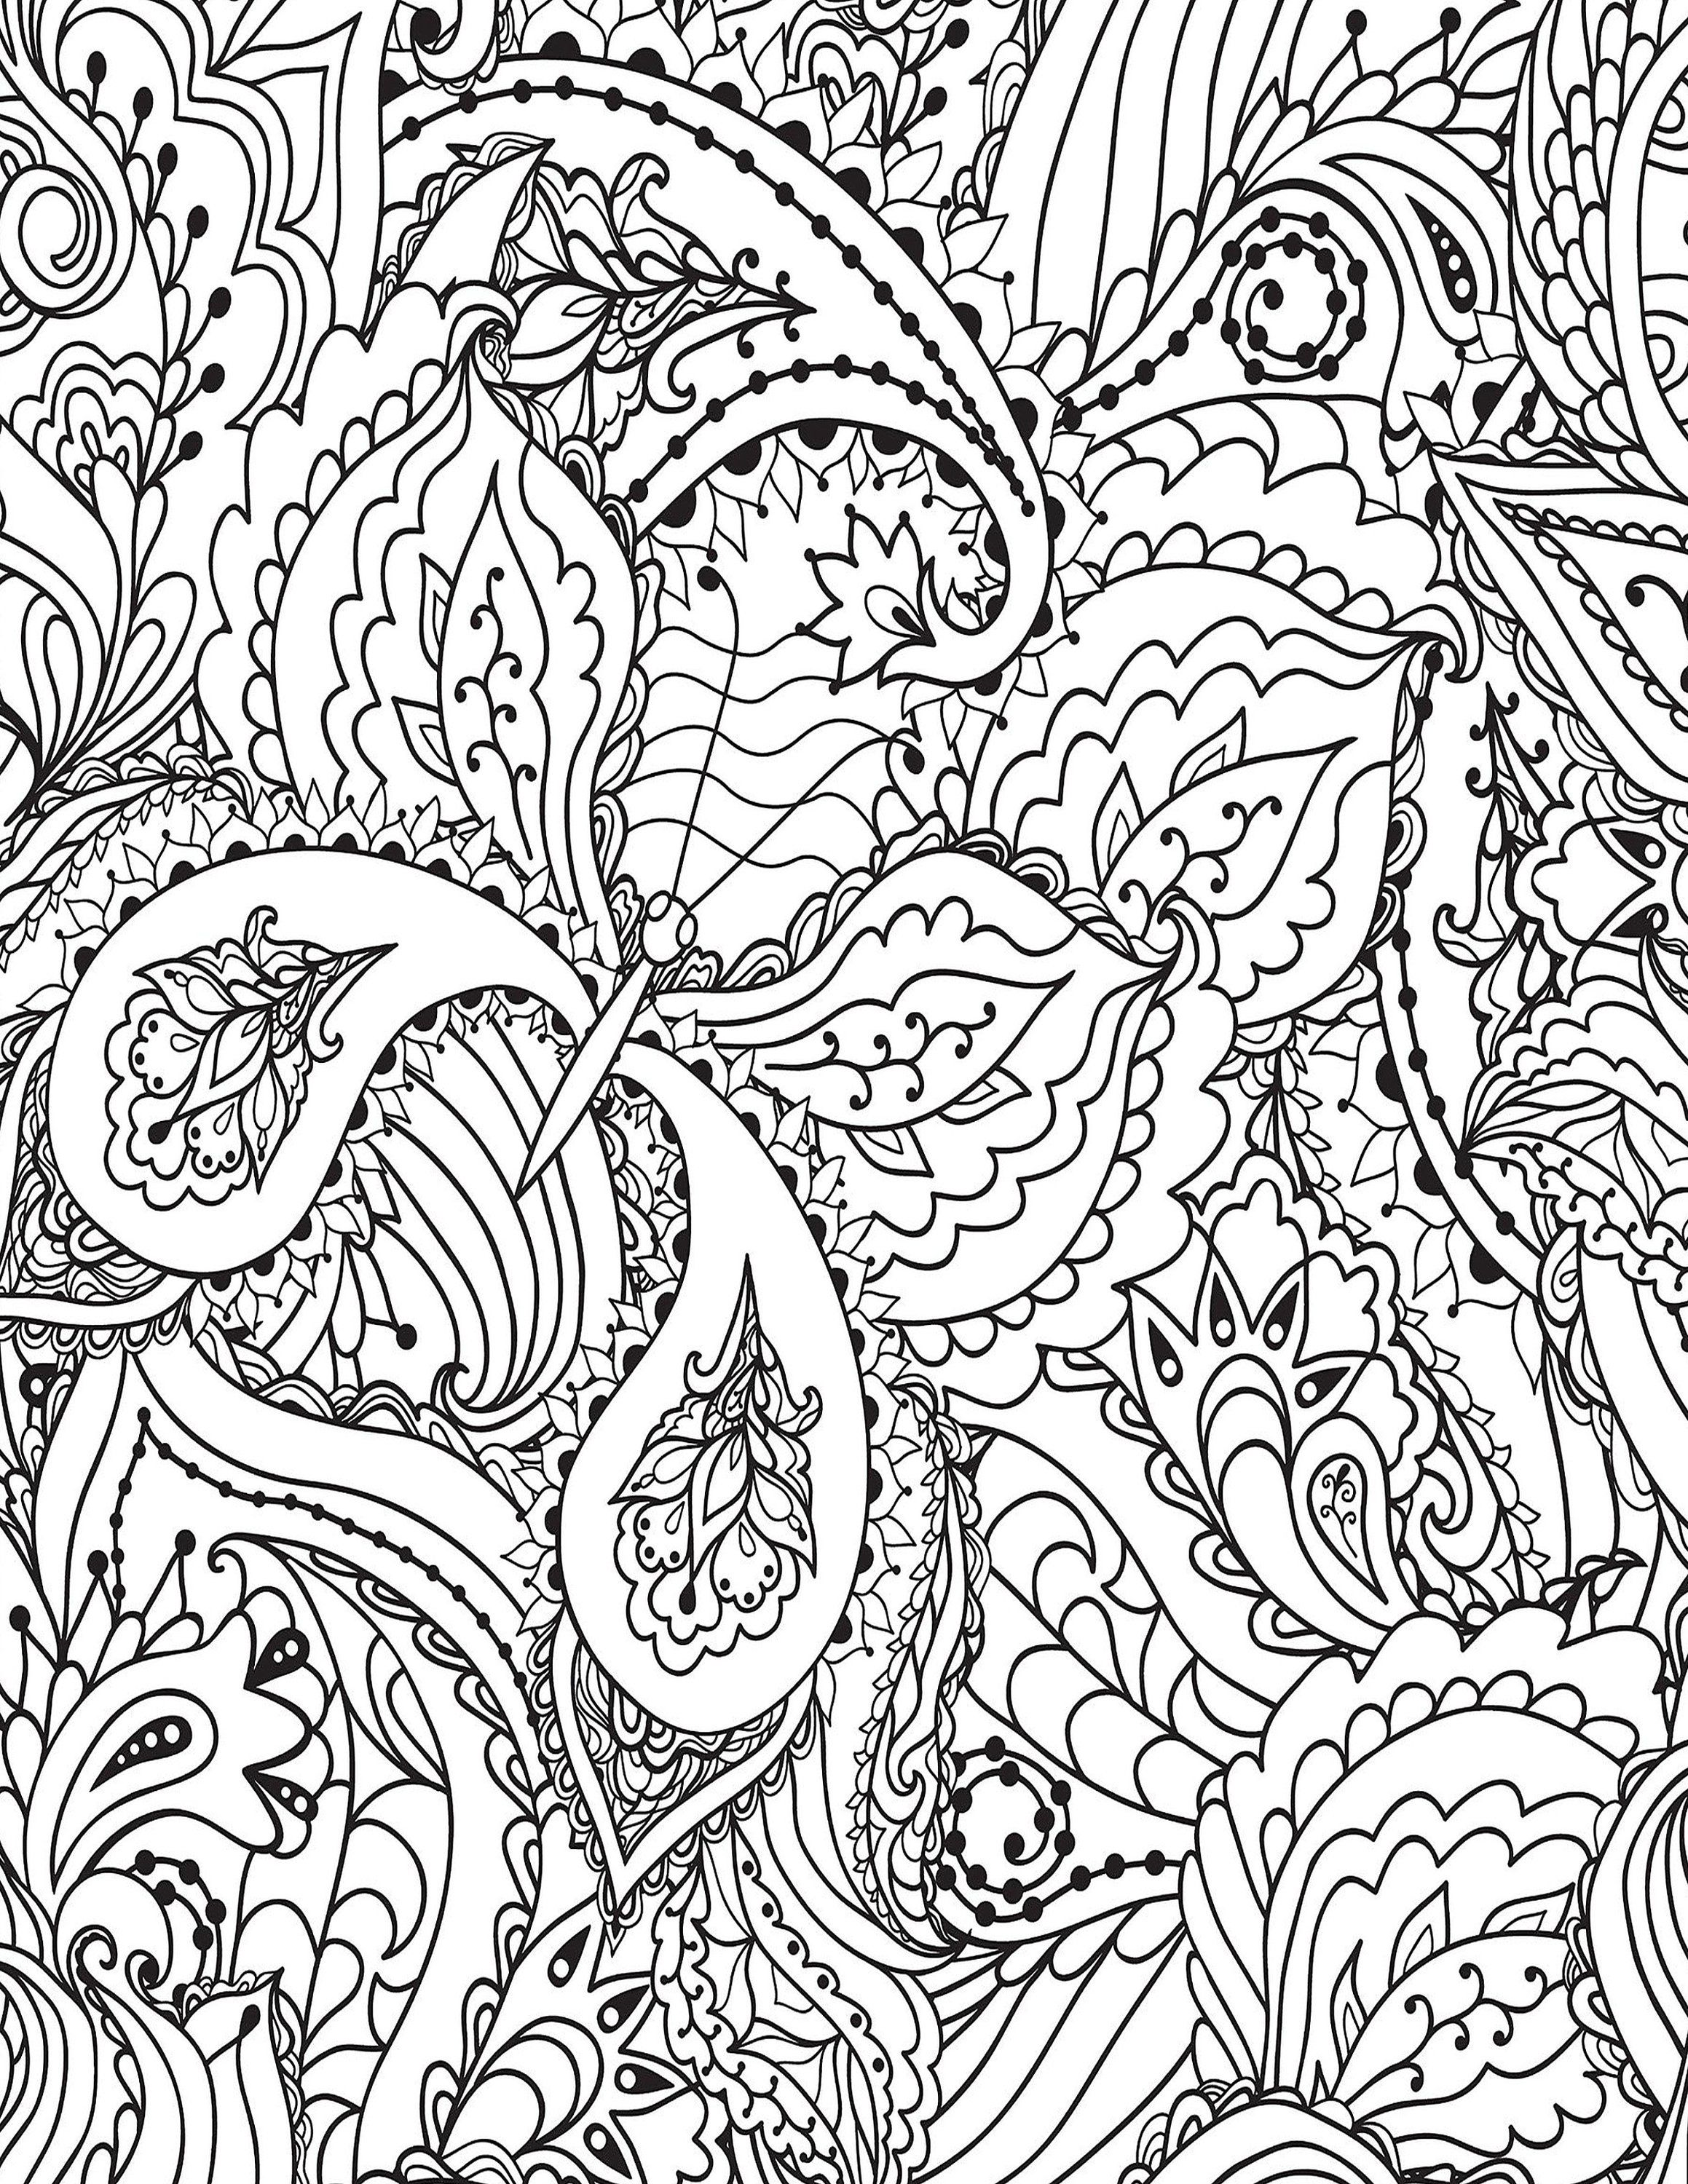 Zentangle Art Pattern Coloring Page, Adult Coloring Sheet, PDF Coloring  Page, Grown up Coloring, Printable Art Color, Anti-Stress Coloring, in 2020  | Free adult coloring pages, Pattern coloring pages, Mandala coloring pages